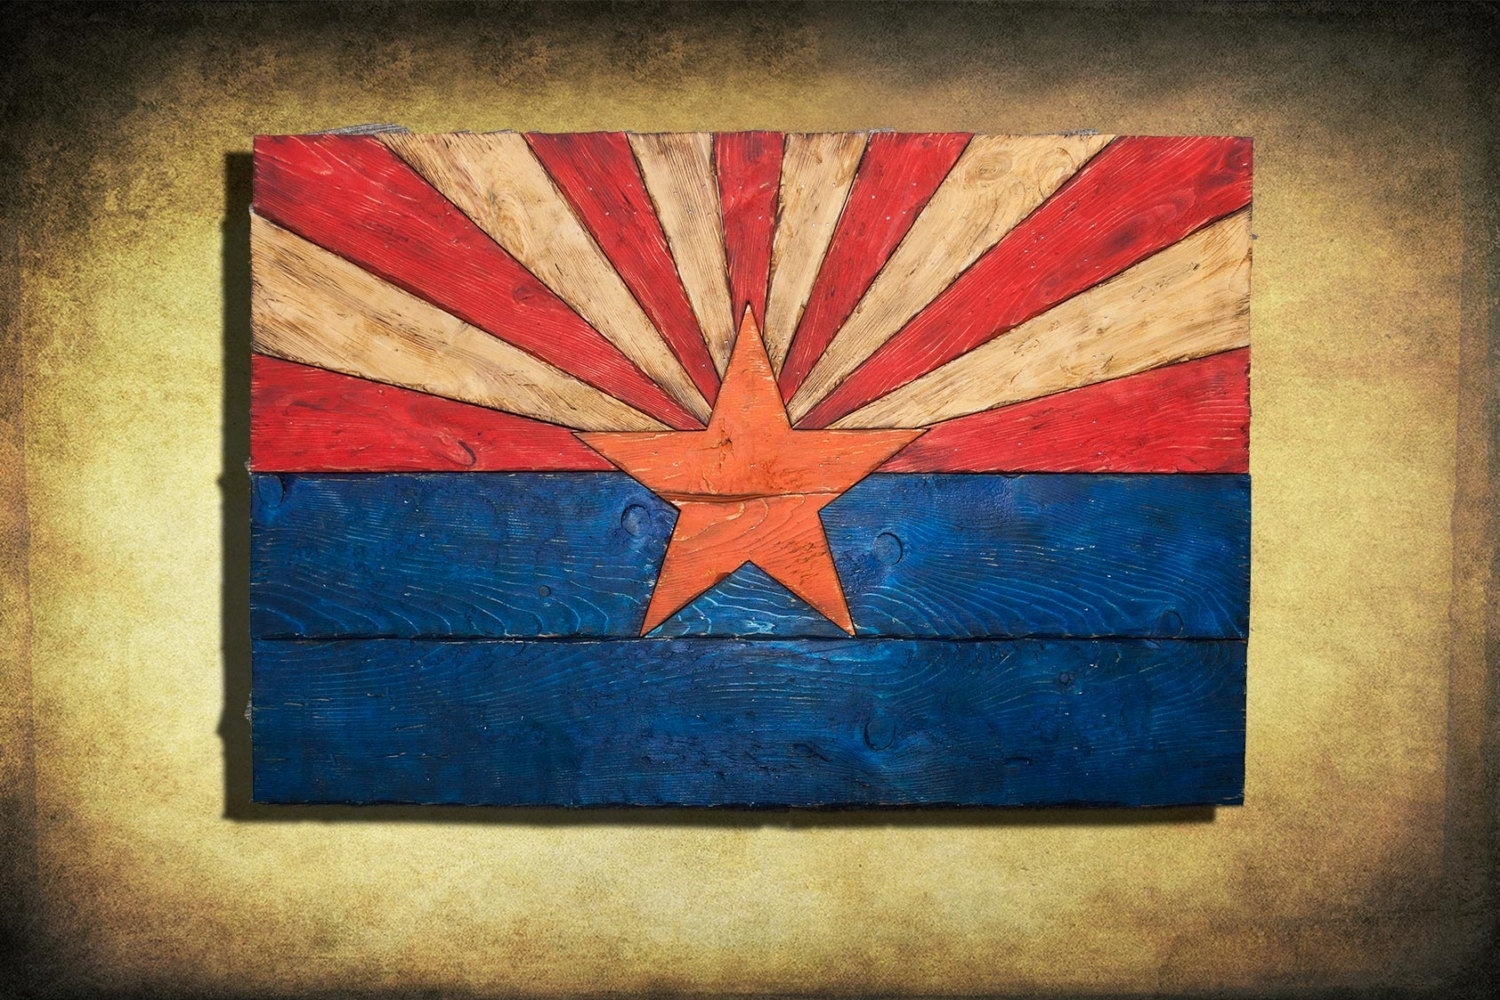 Arizona Flag, Handmade, Distressed Painted Wood, Vintage, Art Intended For Most Popular Arizona Wall Art (View 5 of 20)